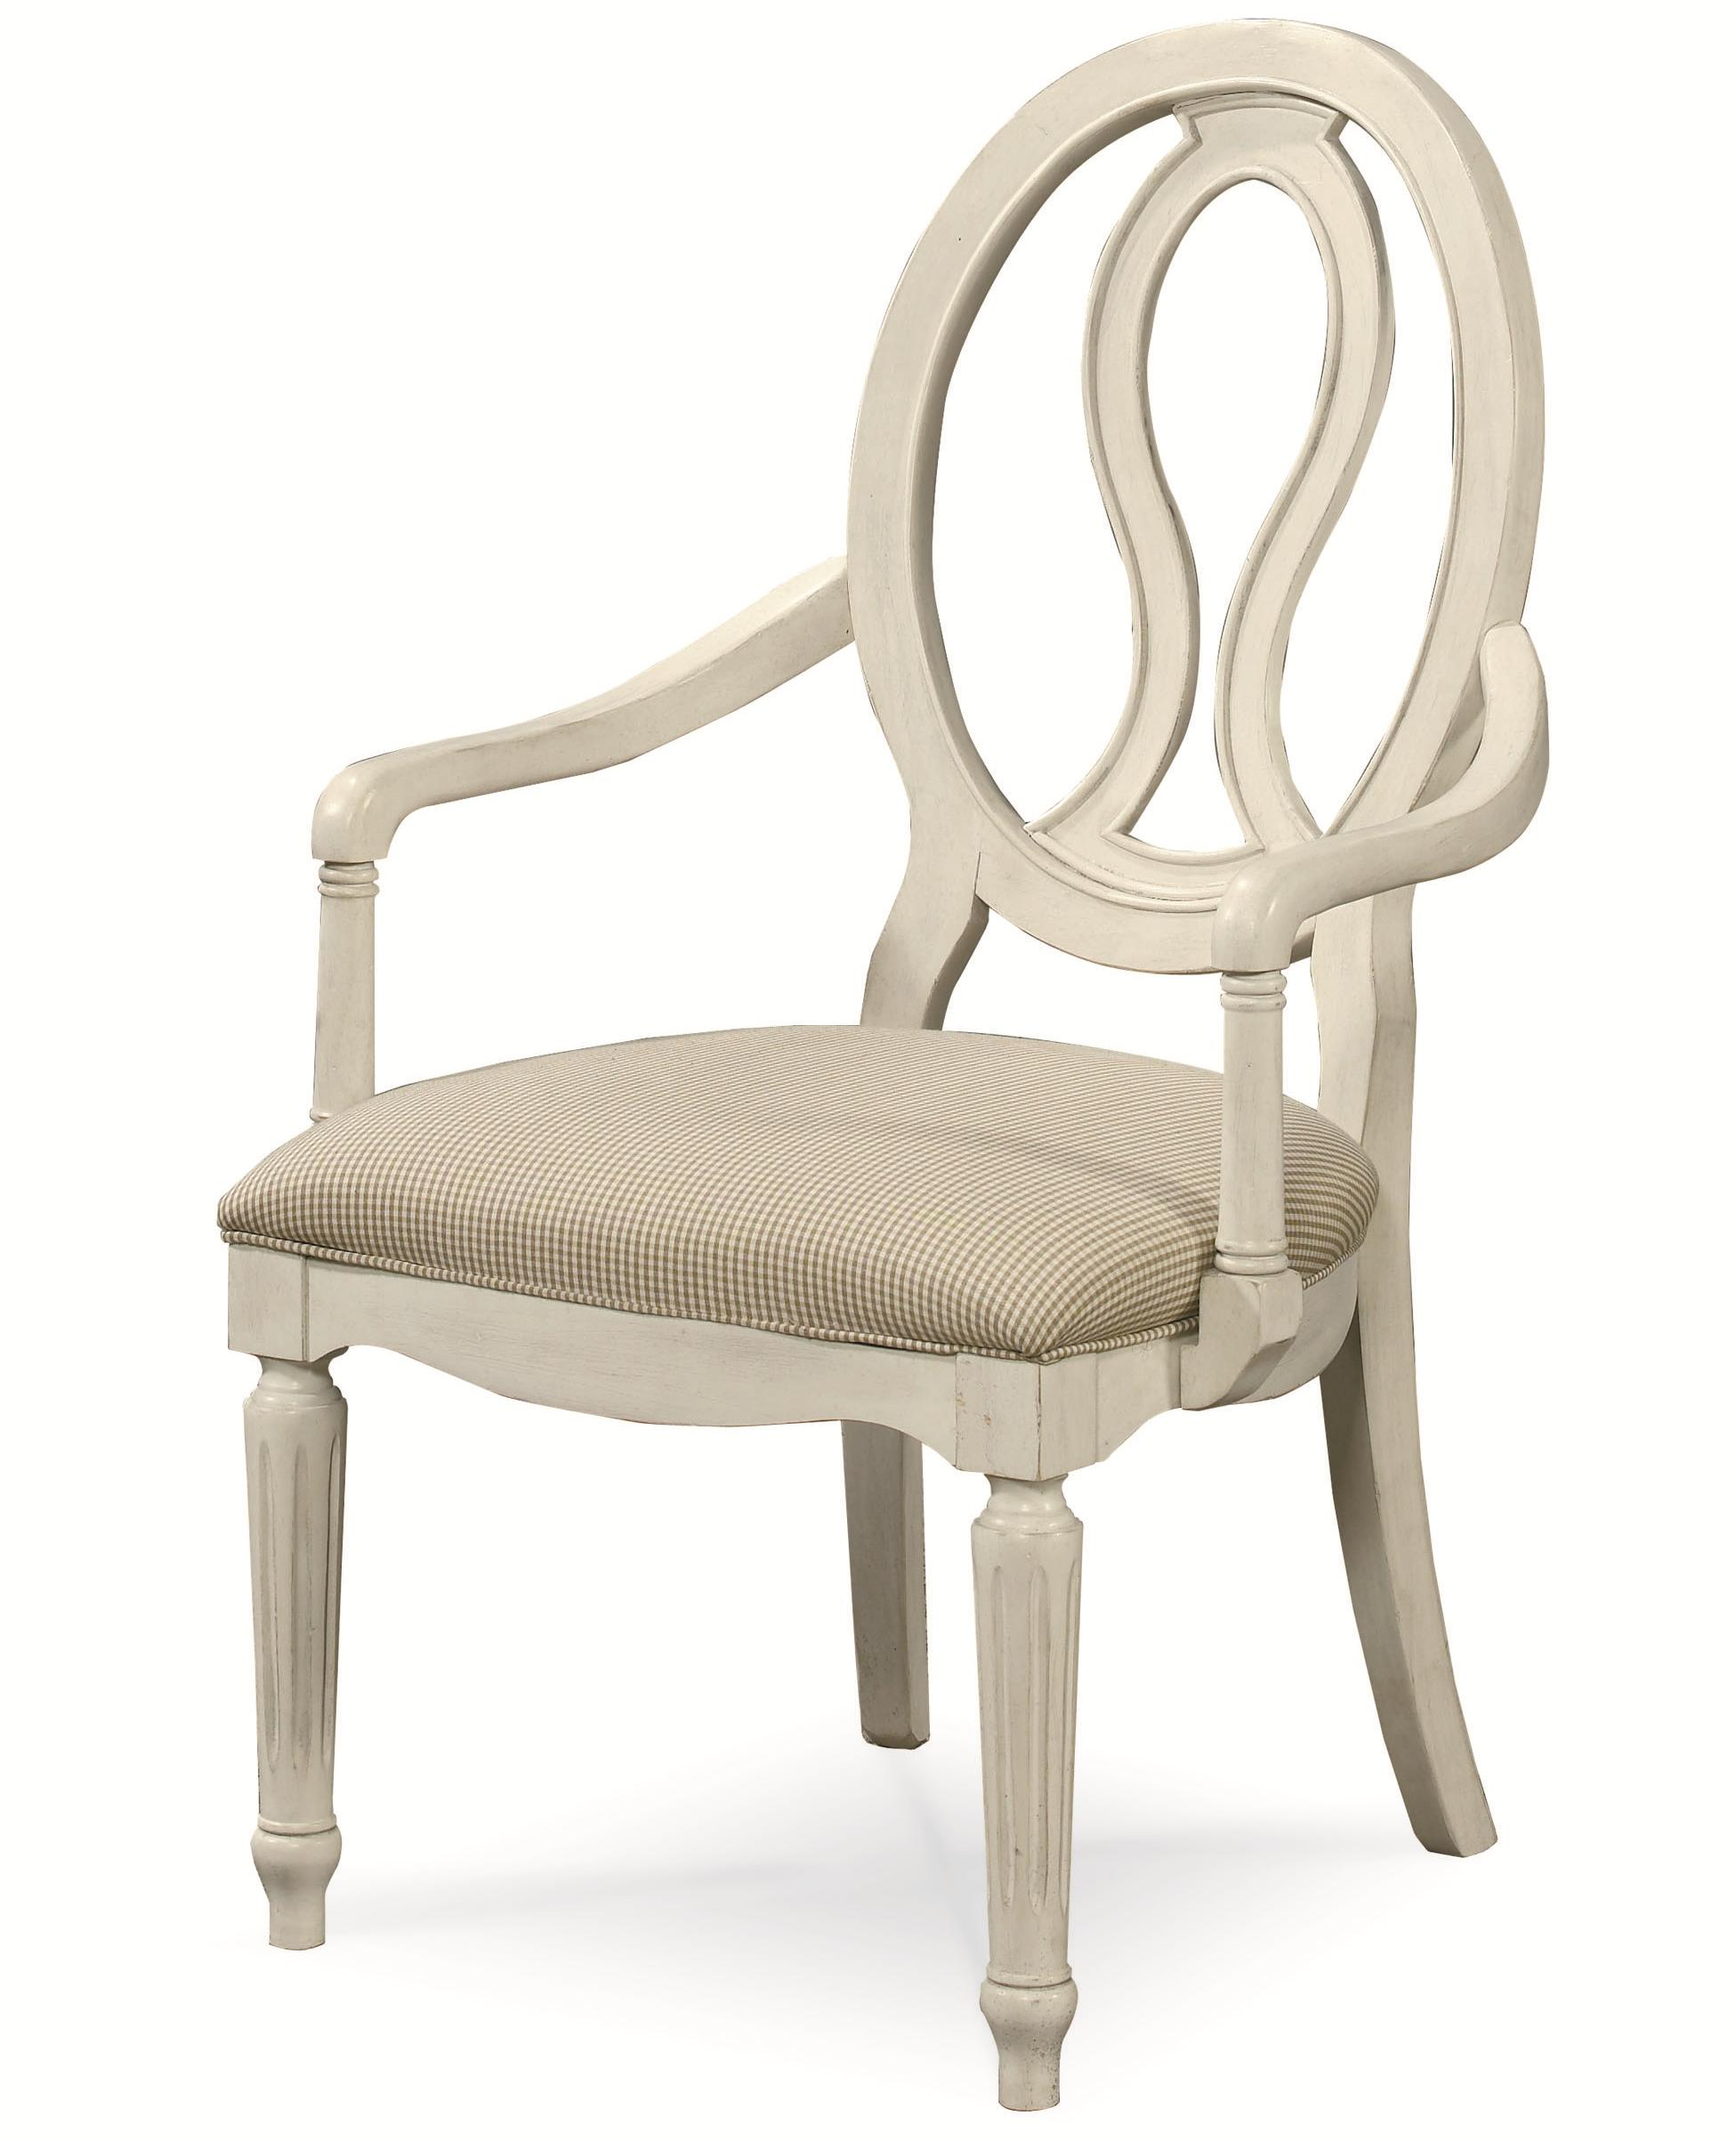 Universal Summer Hill Pierced Back Arm Chair - Item Number: 987637-RTA